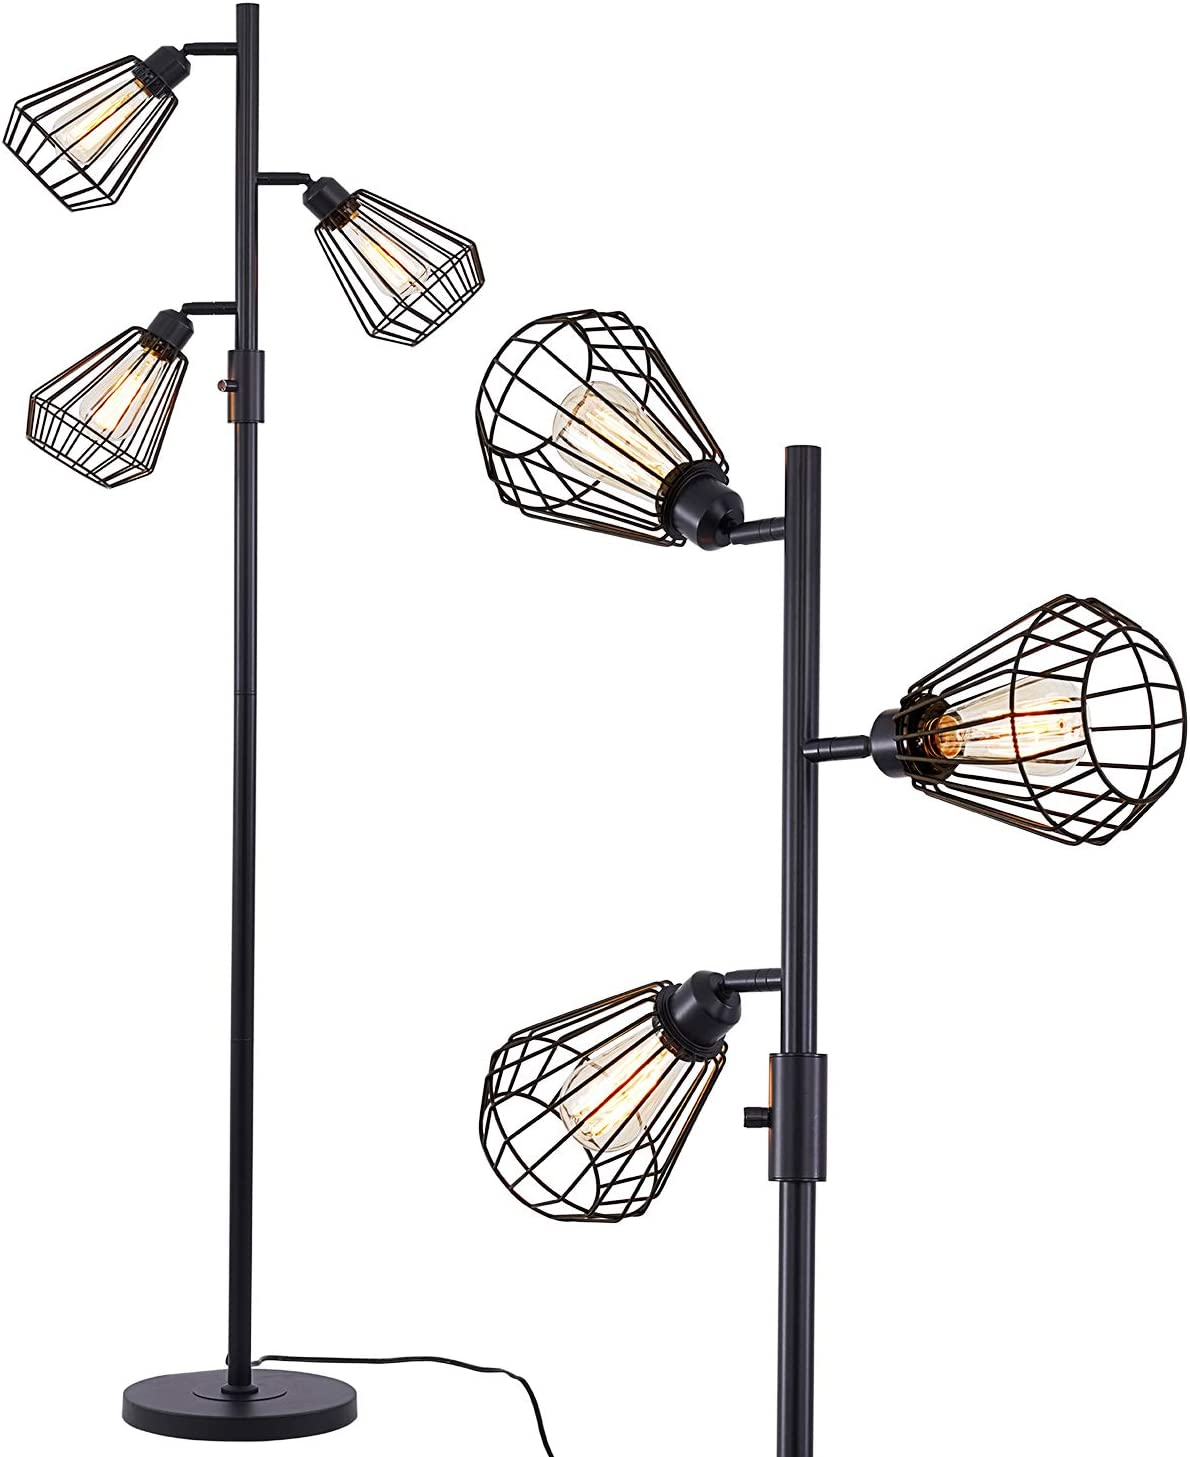 Stepeak Dimmable Tree Floor Lamp